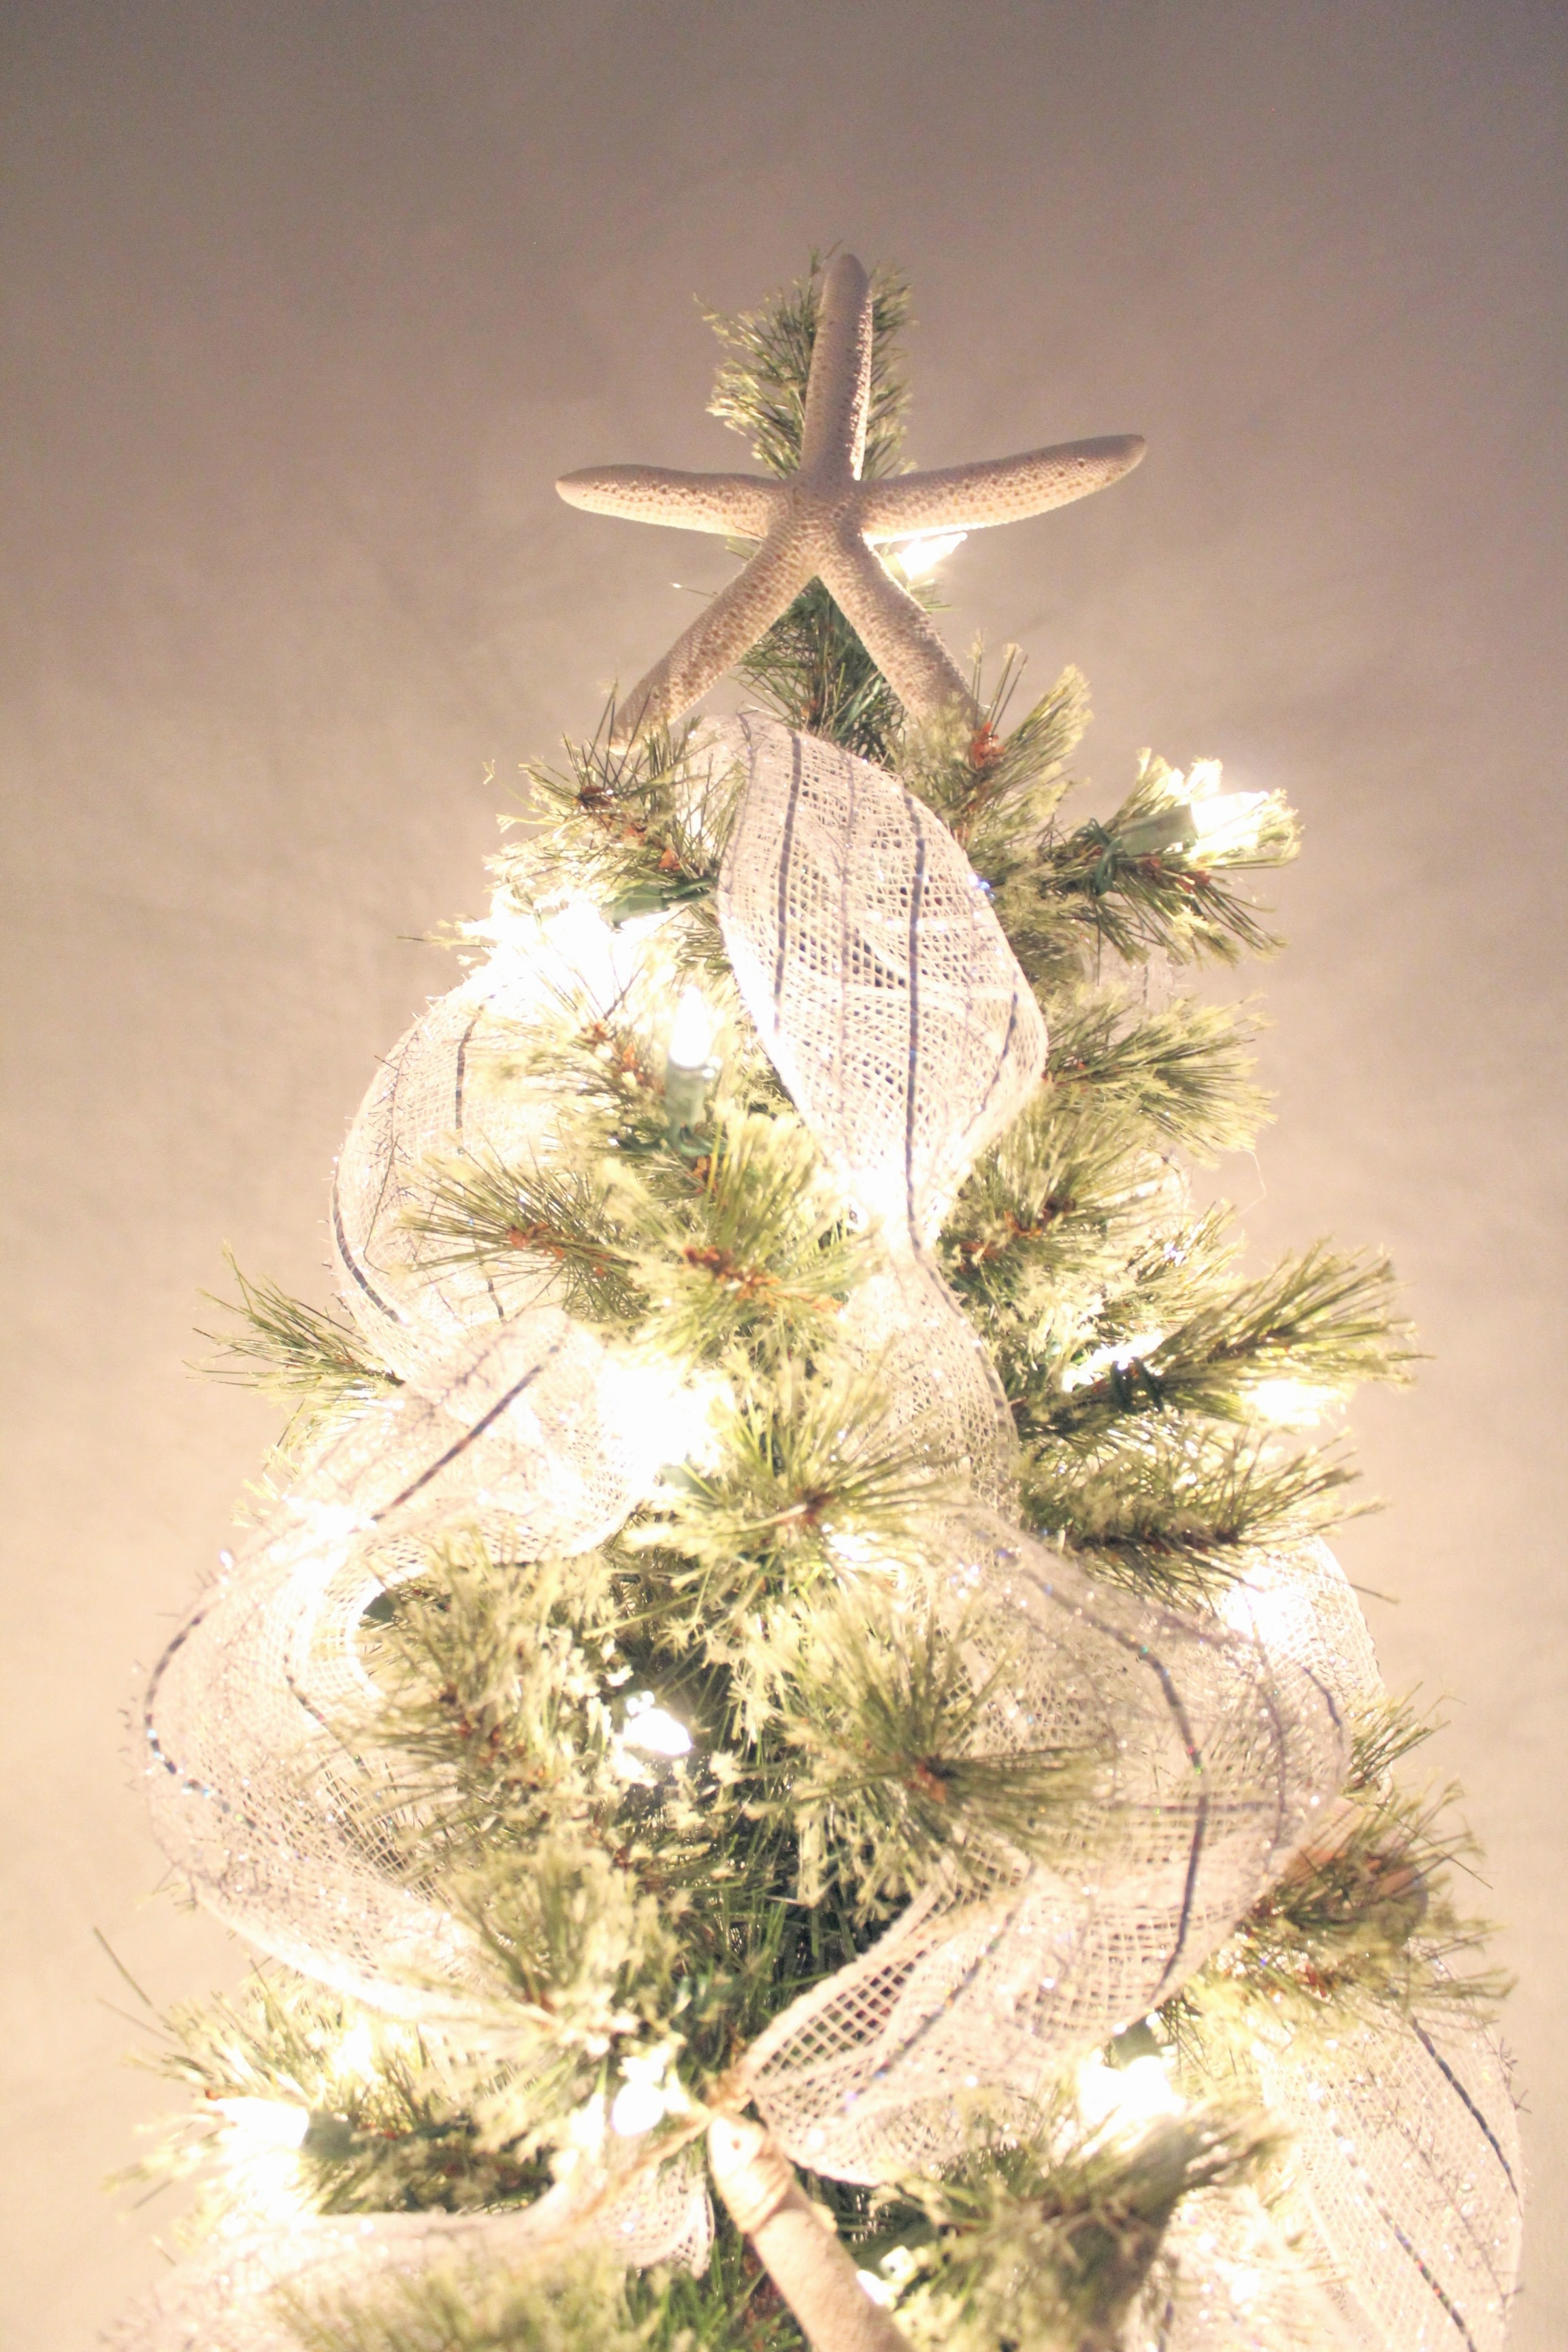 Make Your Christmas Tree Look Like a Million Bucks on a Budget | House Full of Summer blog - christmas tree styling, how to decorate a christmas tree, christmas tree tips, ideas, holiday decor, coastal home and lifestyle, diy christmas tips